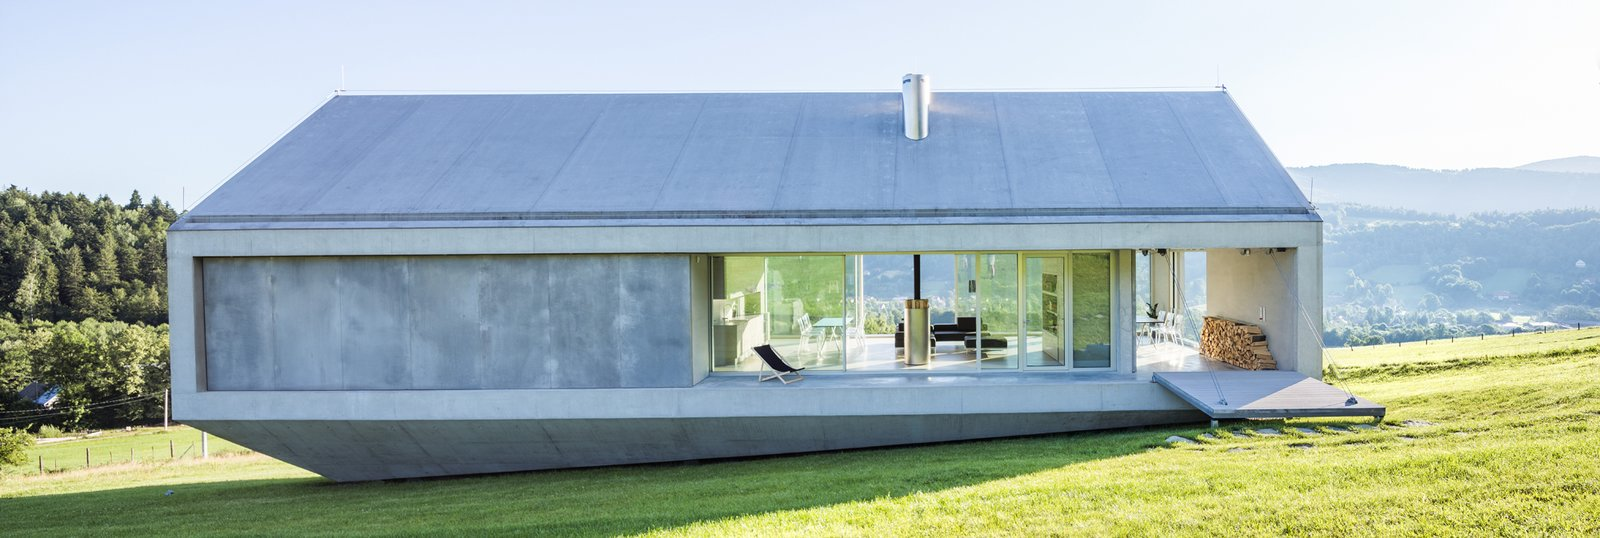 Photo 1 of 8 in A Striking Modern House Built In A Pastoral Landscape